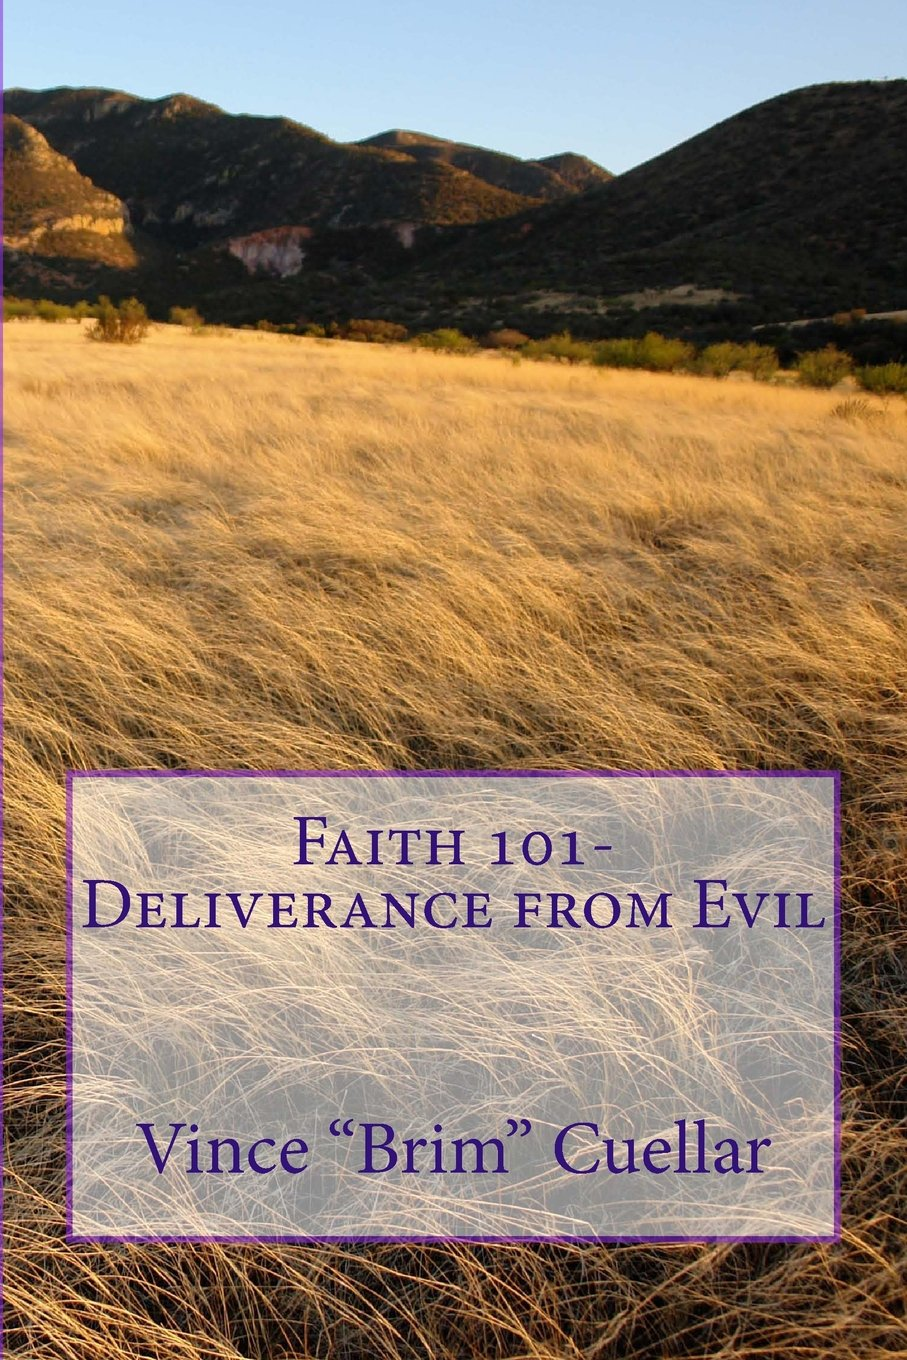 Faith 101-Deliverance from Evil: Vince